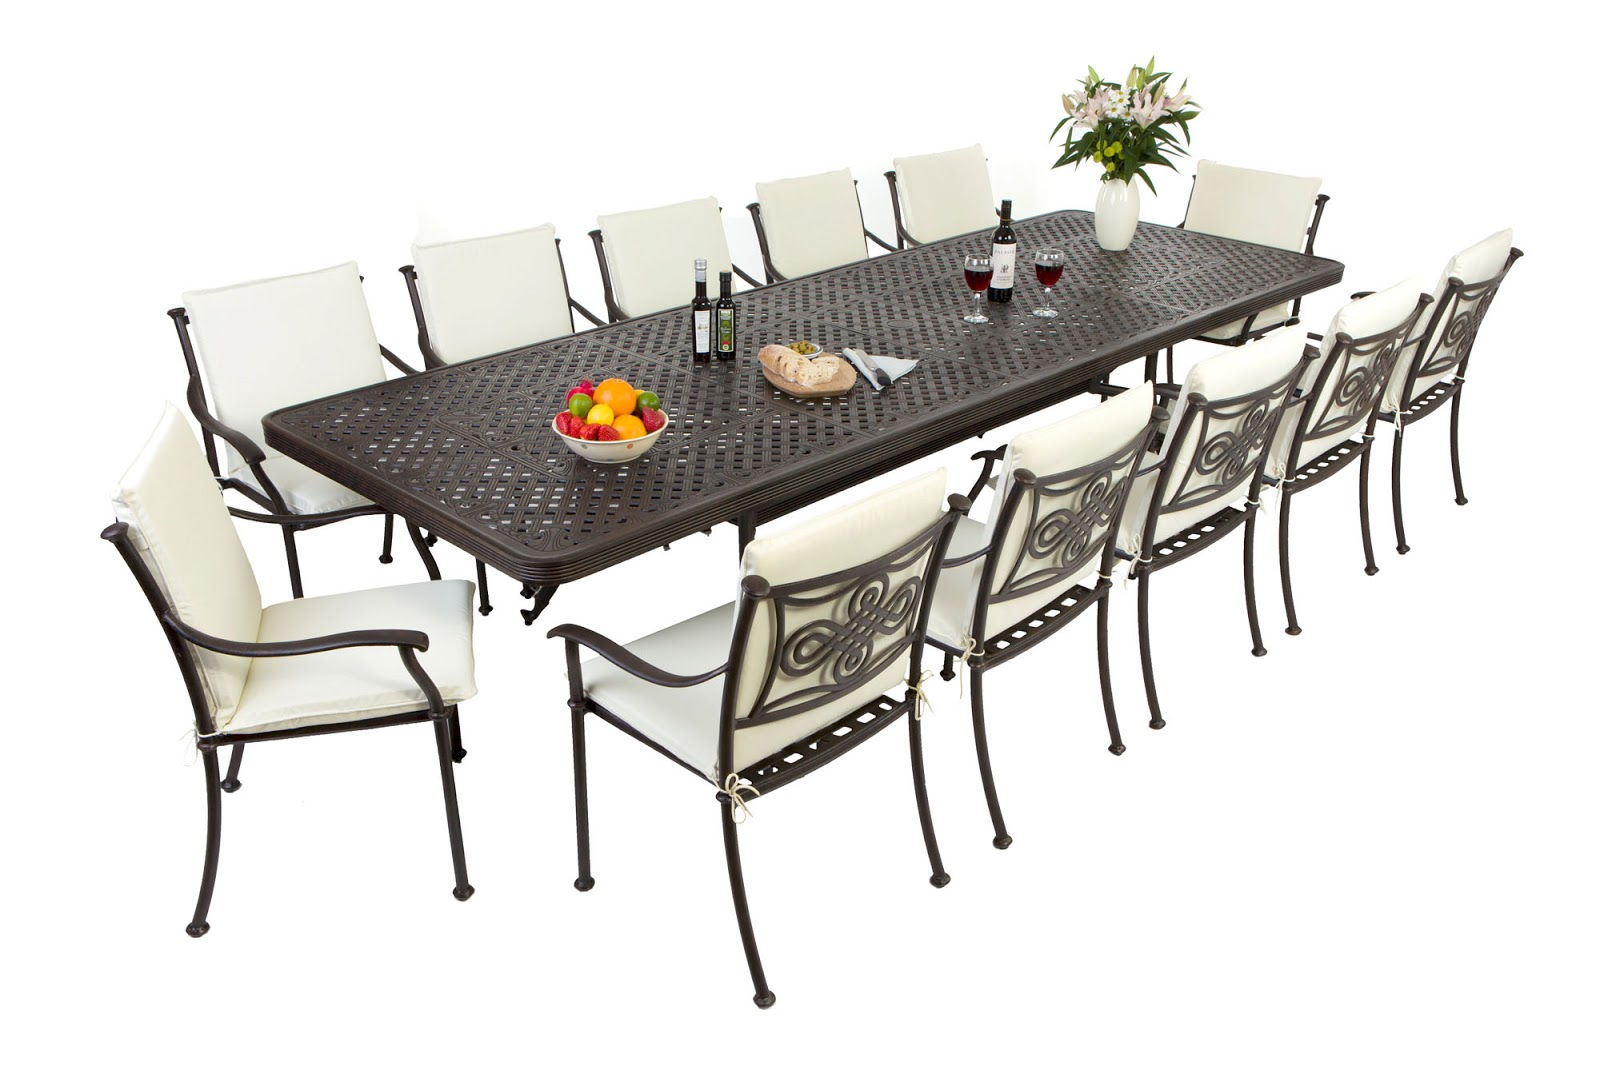 Patio Tables And Chairs Church Chair Industries Outside Edge Garden Furniture Blog The Biggest Extending